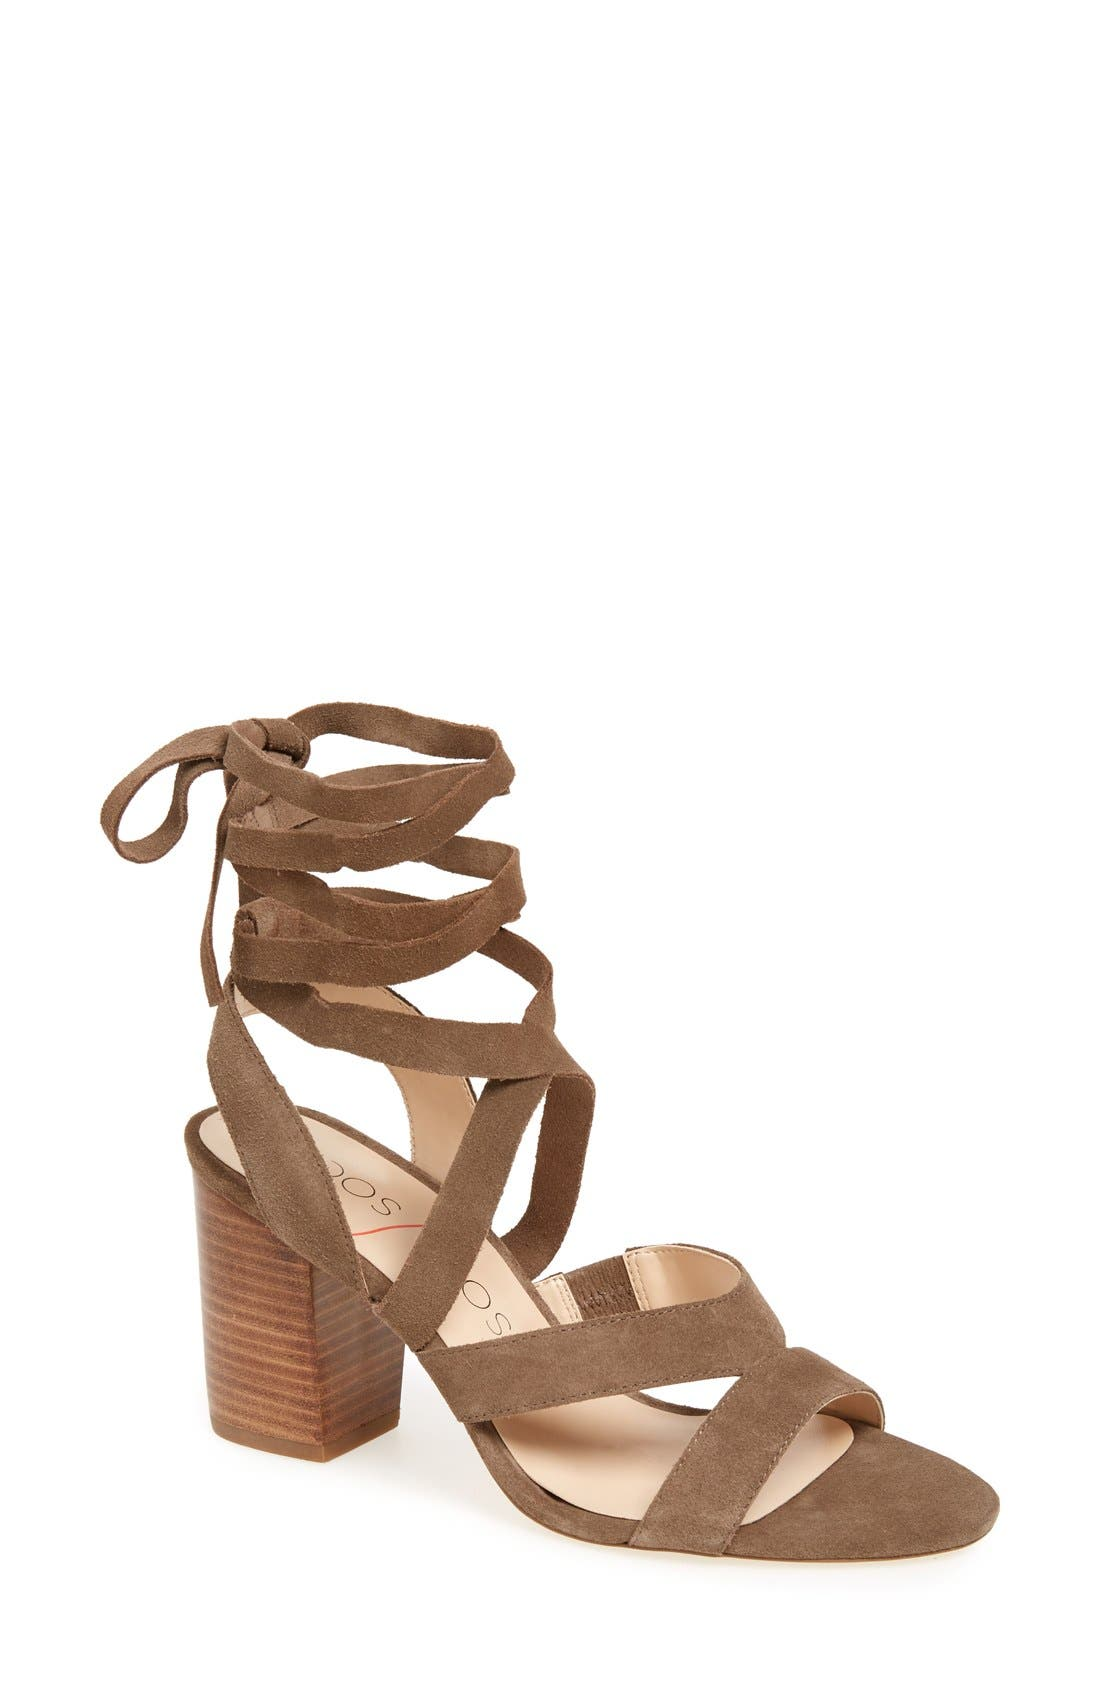 'Lyla' Lace-Up Sandal,                             Main thumbnail 1, color,                             Taupe